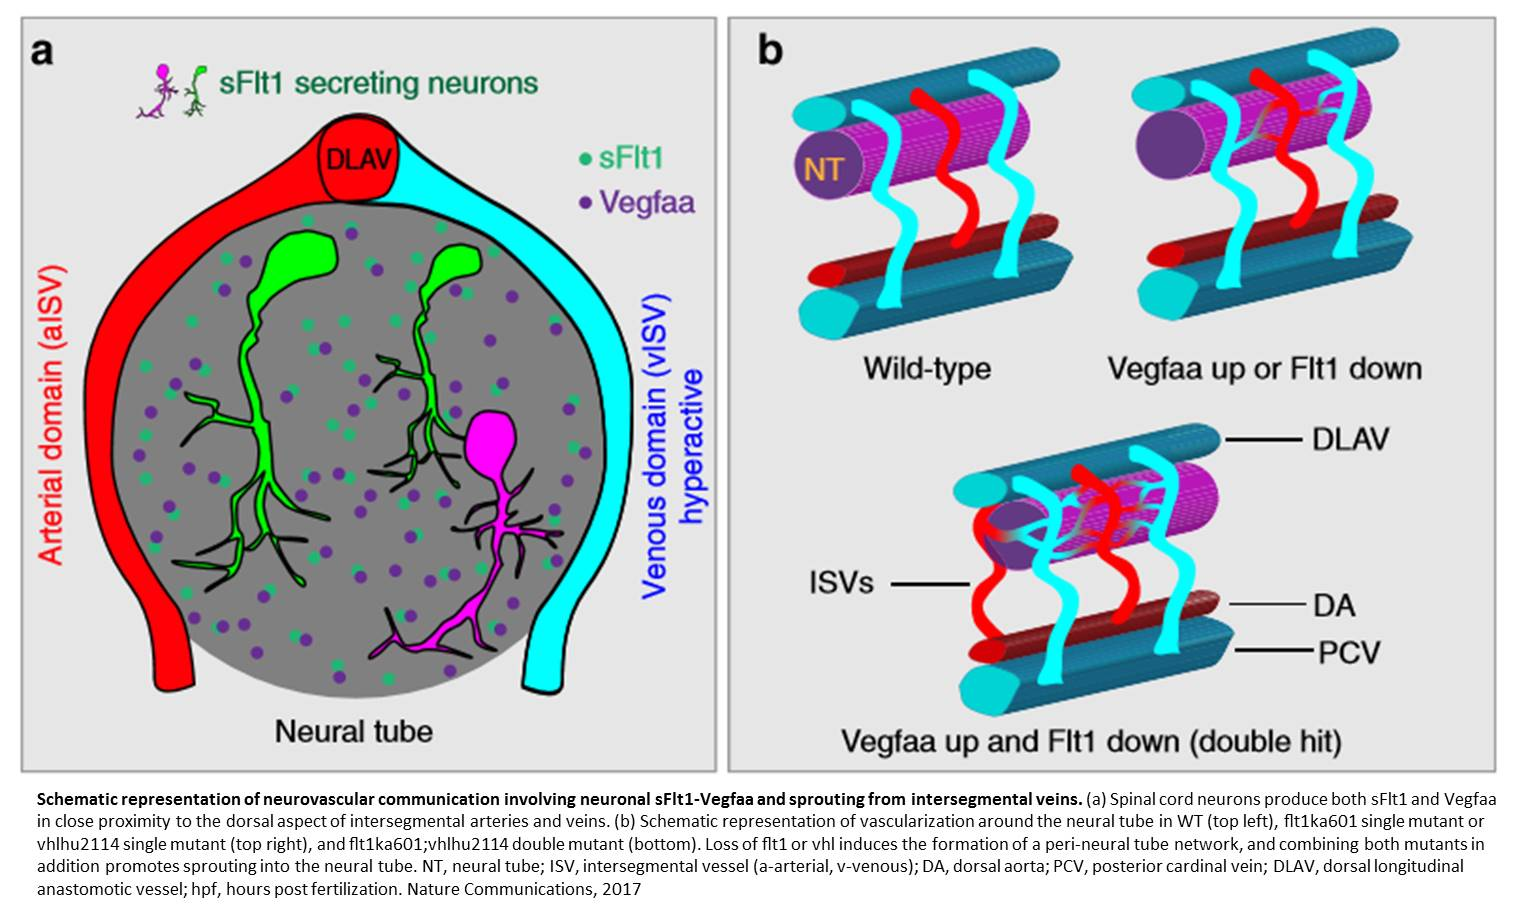 Neurons Modulate the Growth of Blood Vessels